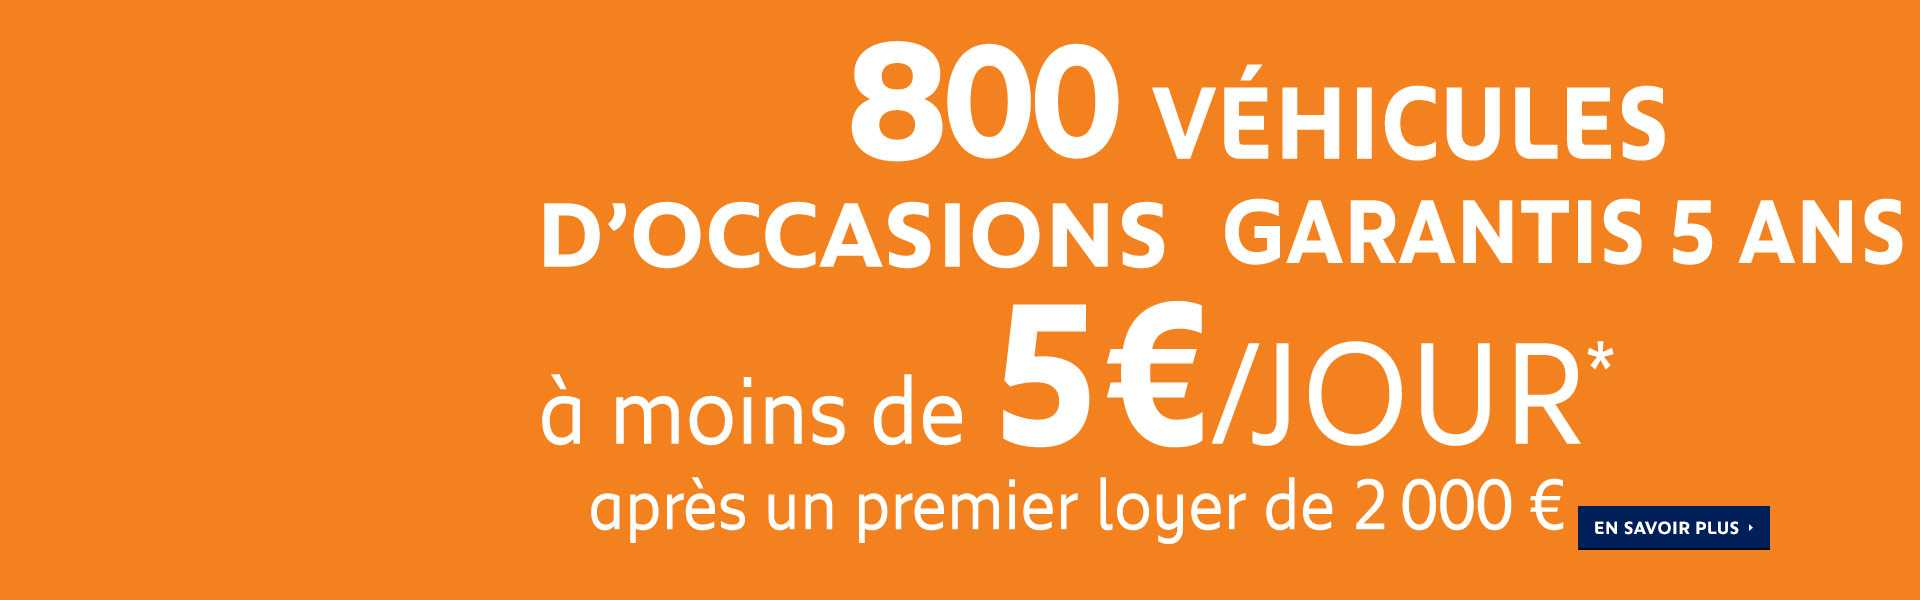 Offre 800 Vehicules